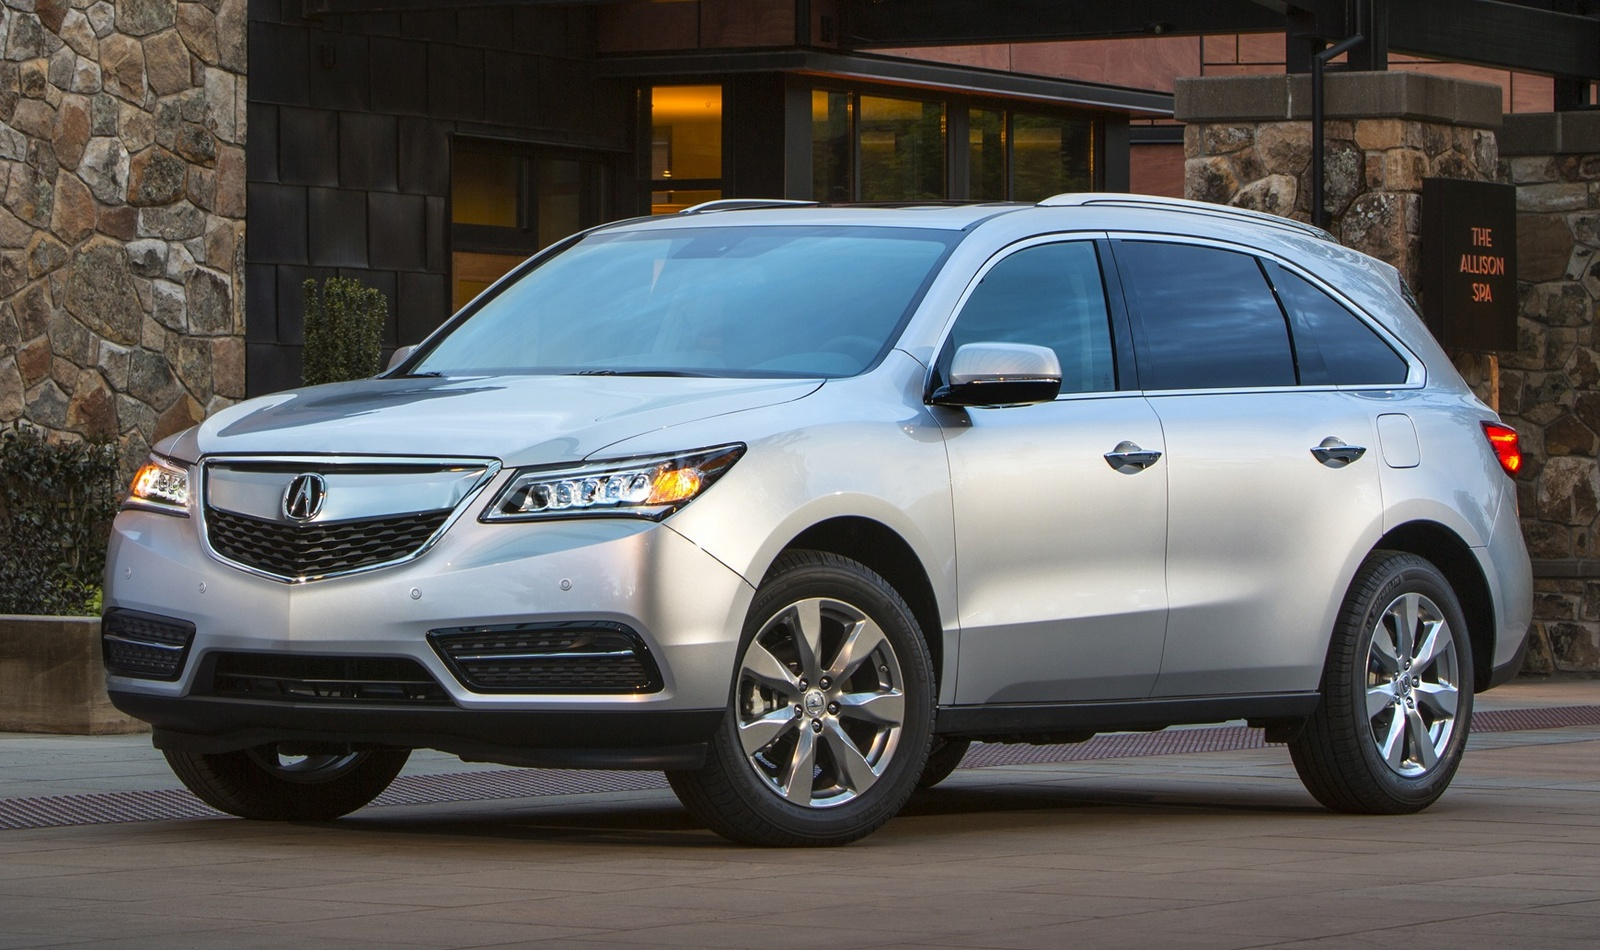 2015 Acura Mdx | 2017 - 2018 Best Cars Reviews